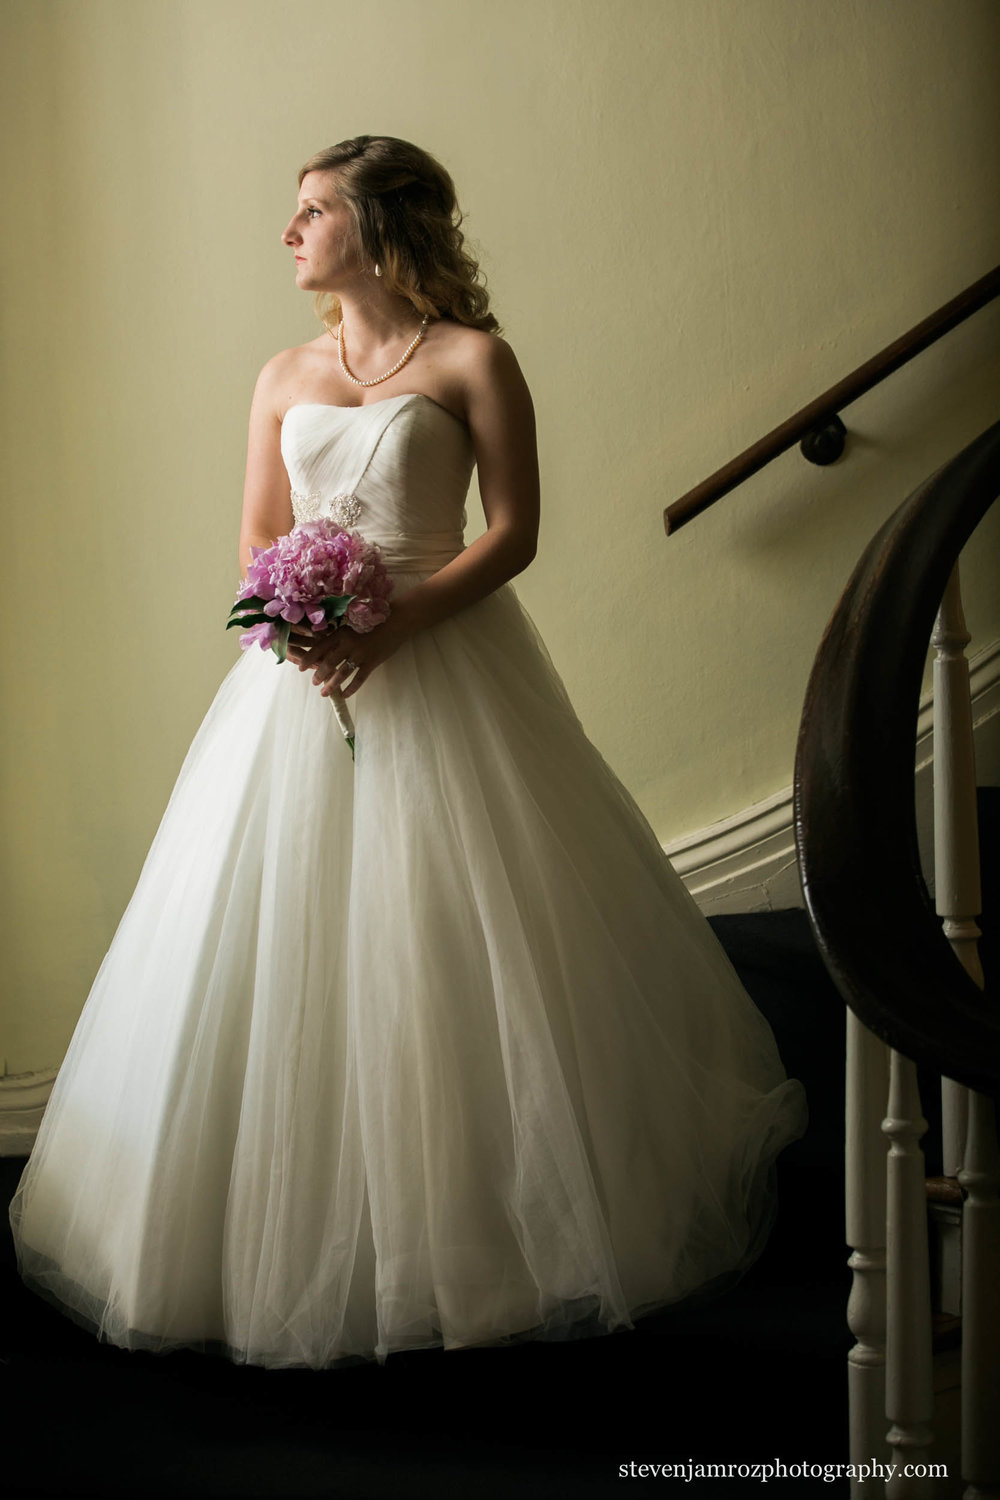 william-peace-university-bridal-portraits-raleigh-nc-steven-jamroz-photography-0536.jpg